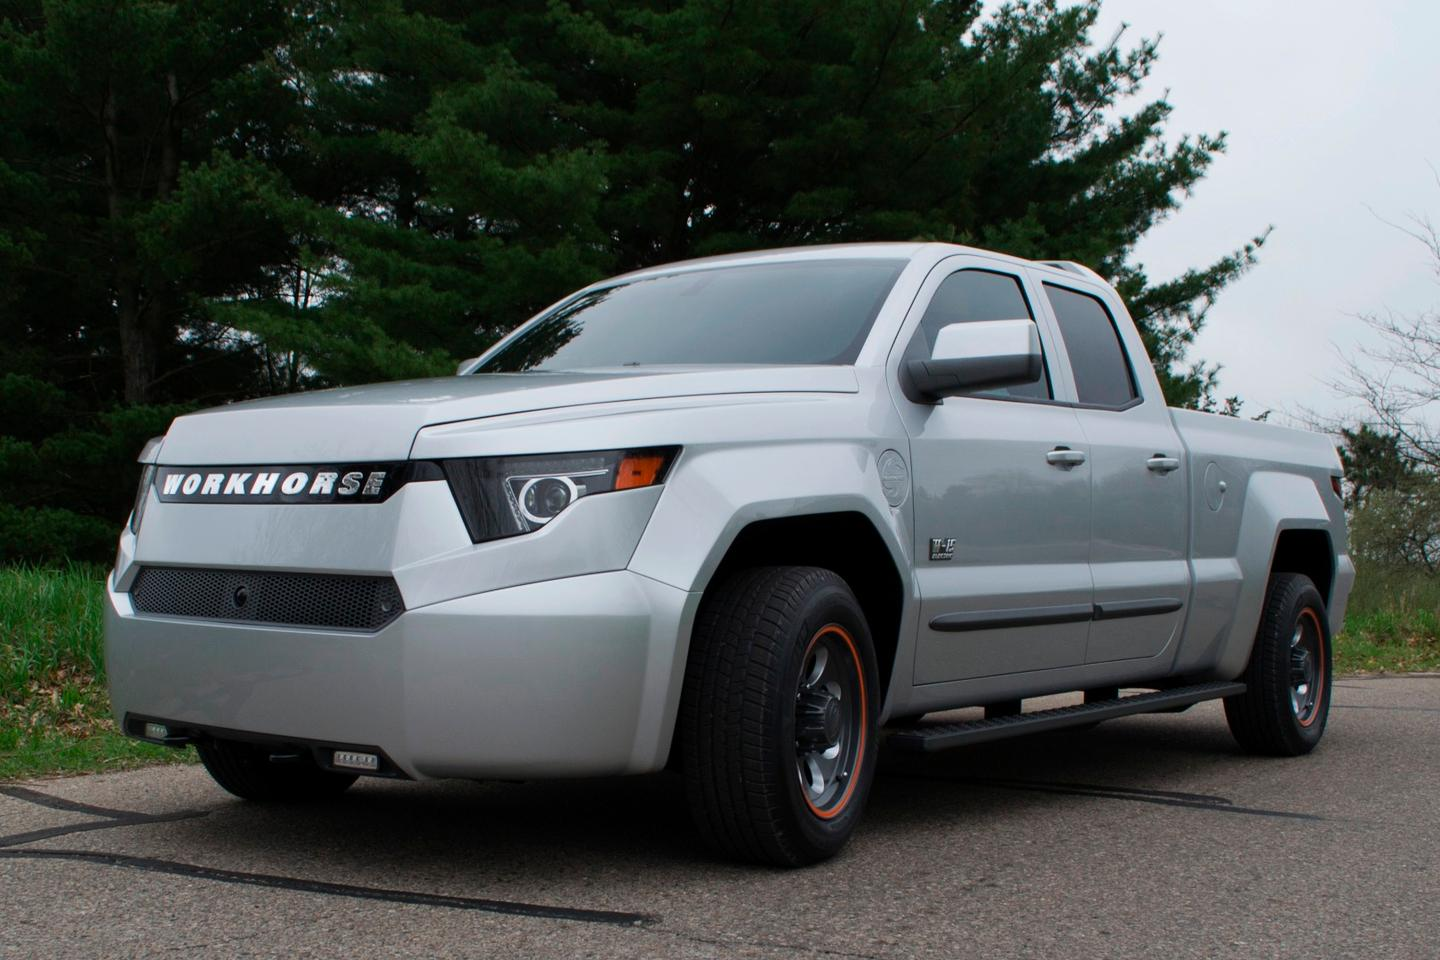 Though it still has an internal combustion engine under the hood, Workhorse has done away with the large, breezy grille common onpickup trucks